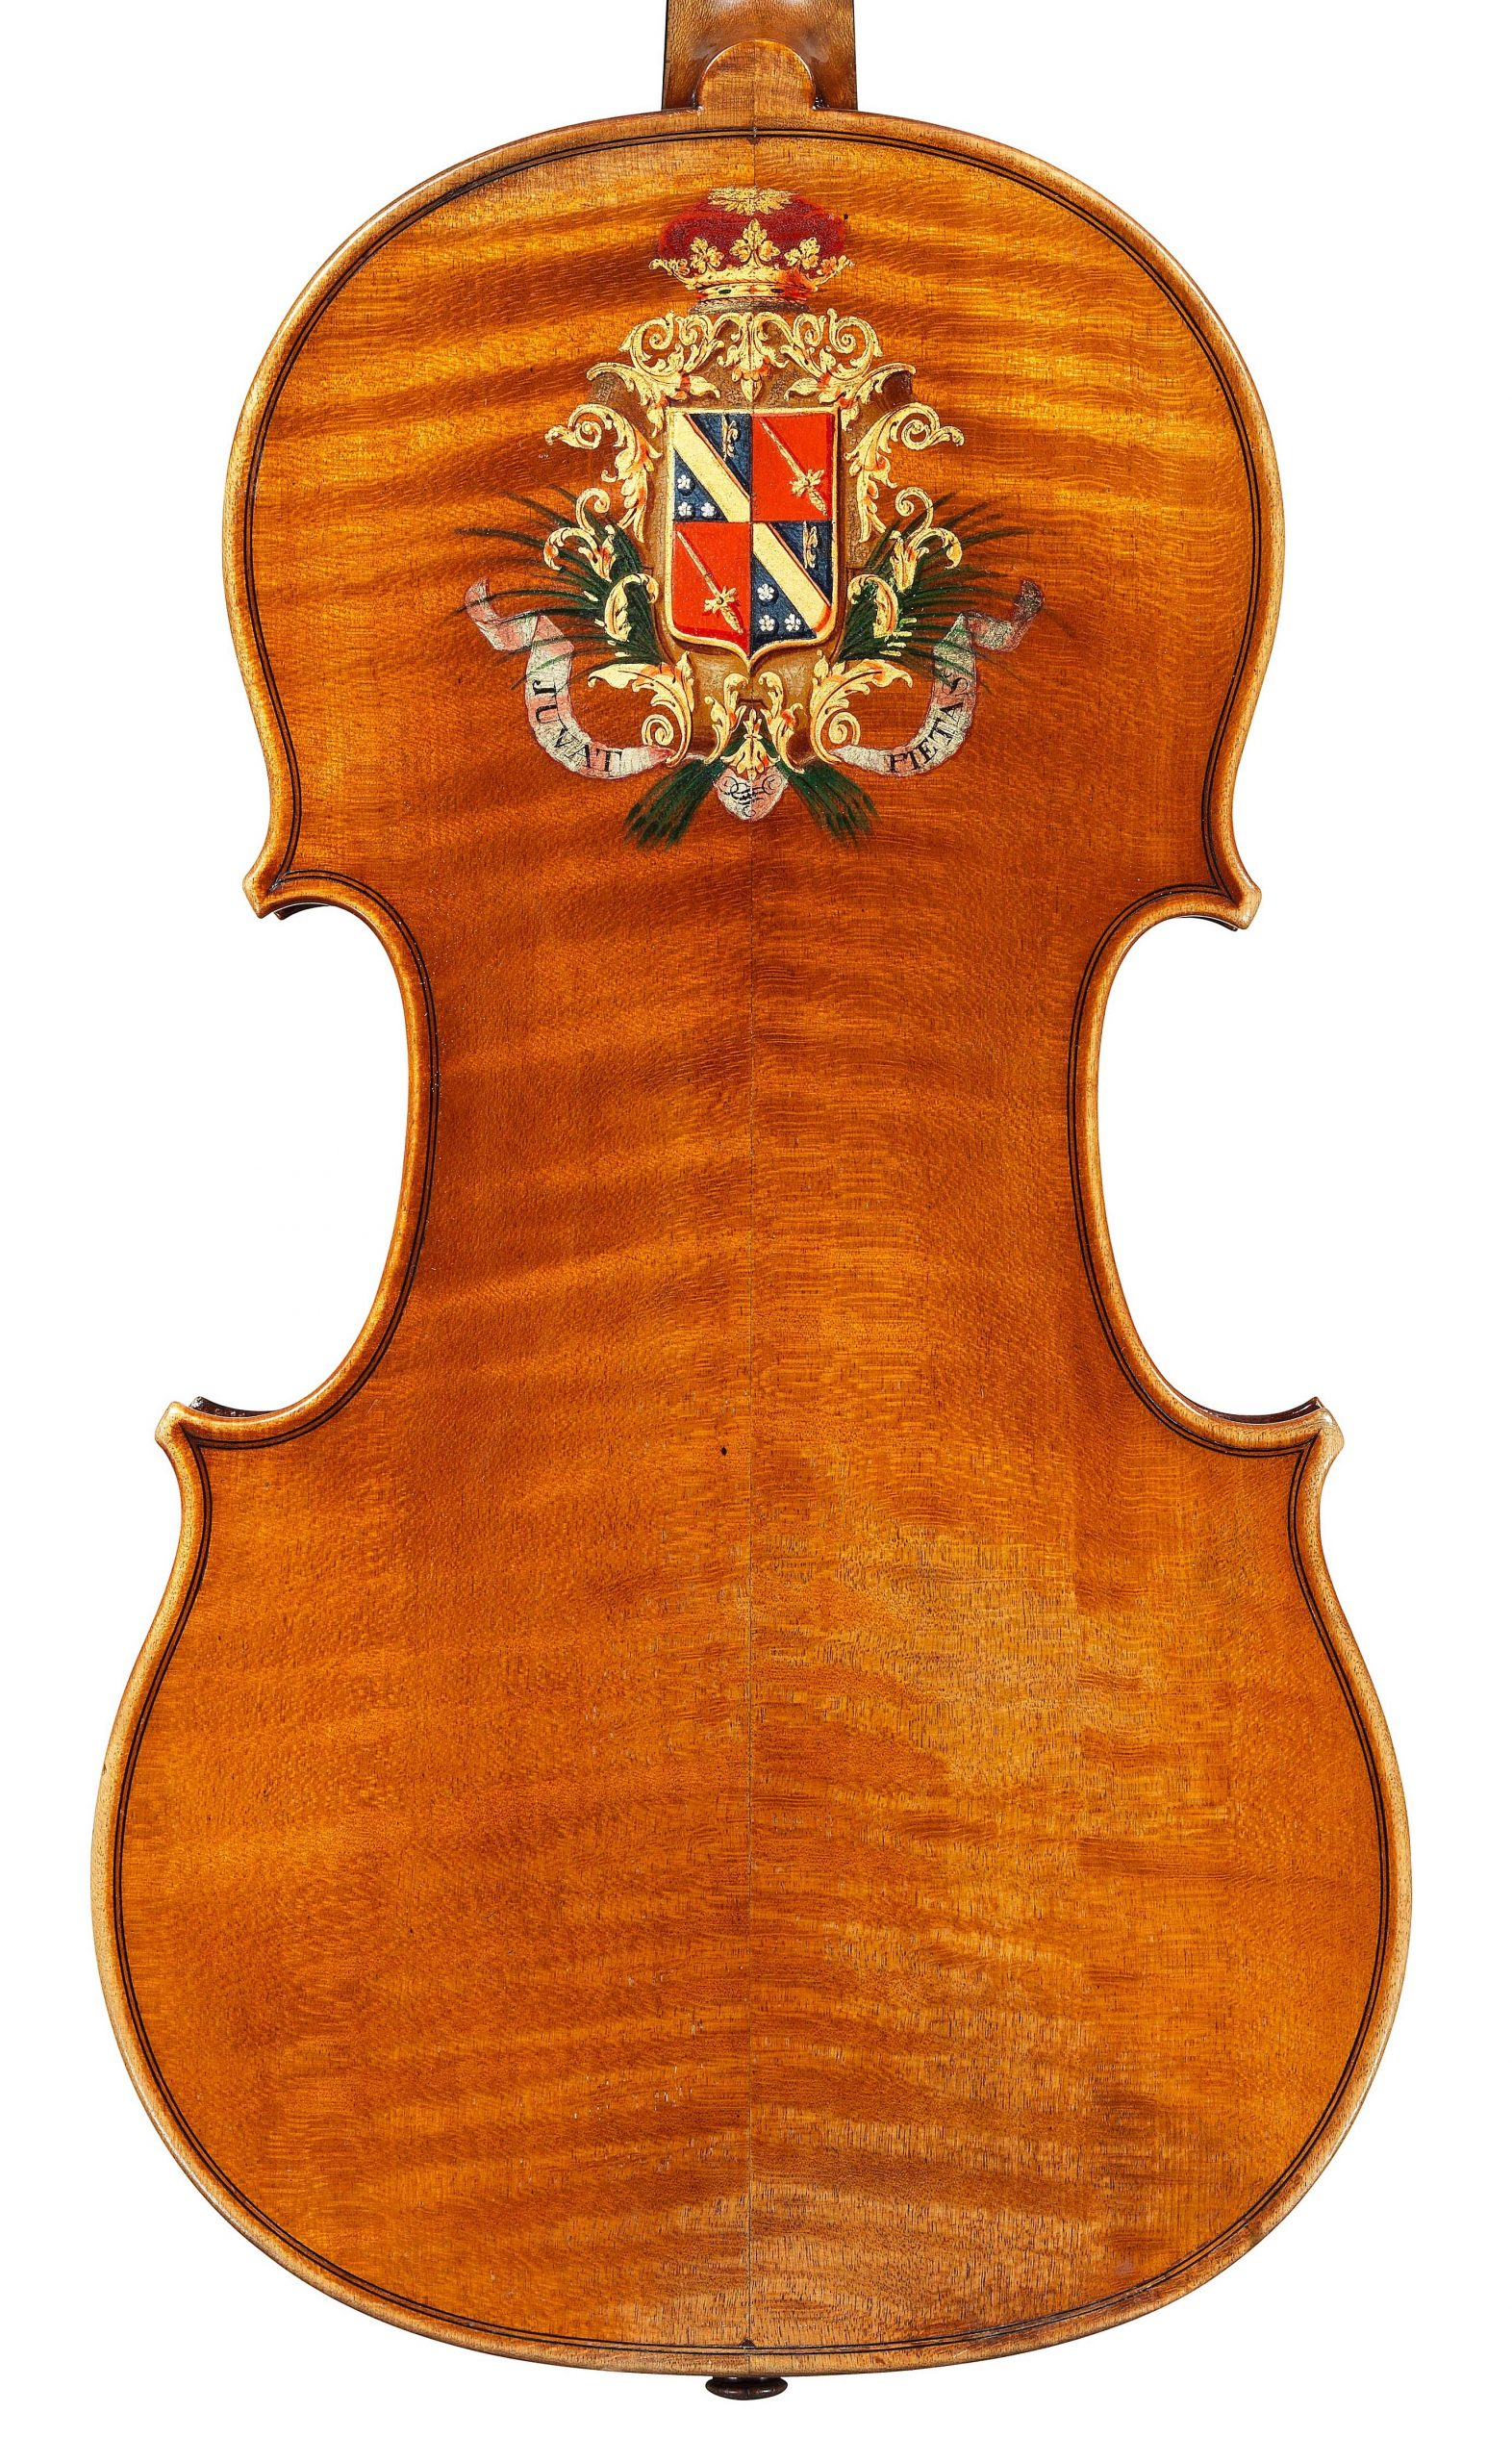 Back of decorated violin by JB Vuillaume, ex-Caraman de Chimay, dated 1865, exhibited by Ingles & Hayday at Sotheby's in 2012